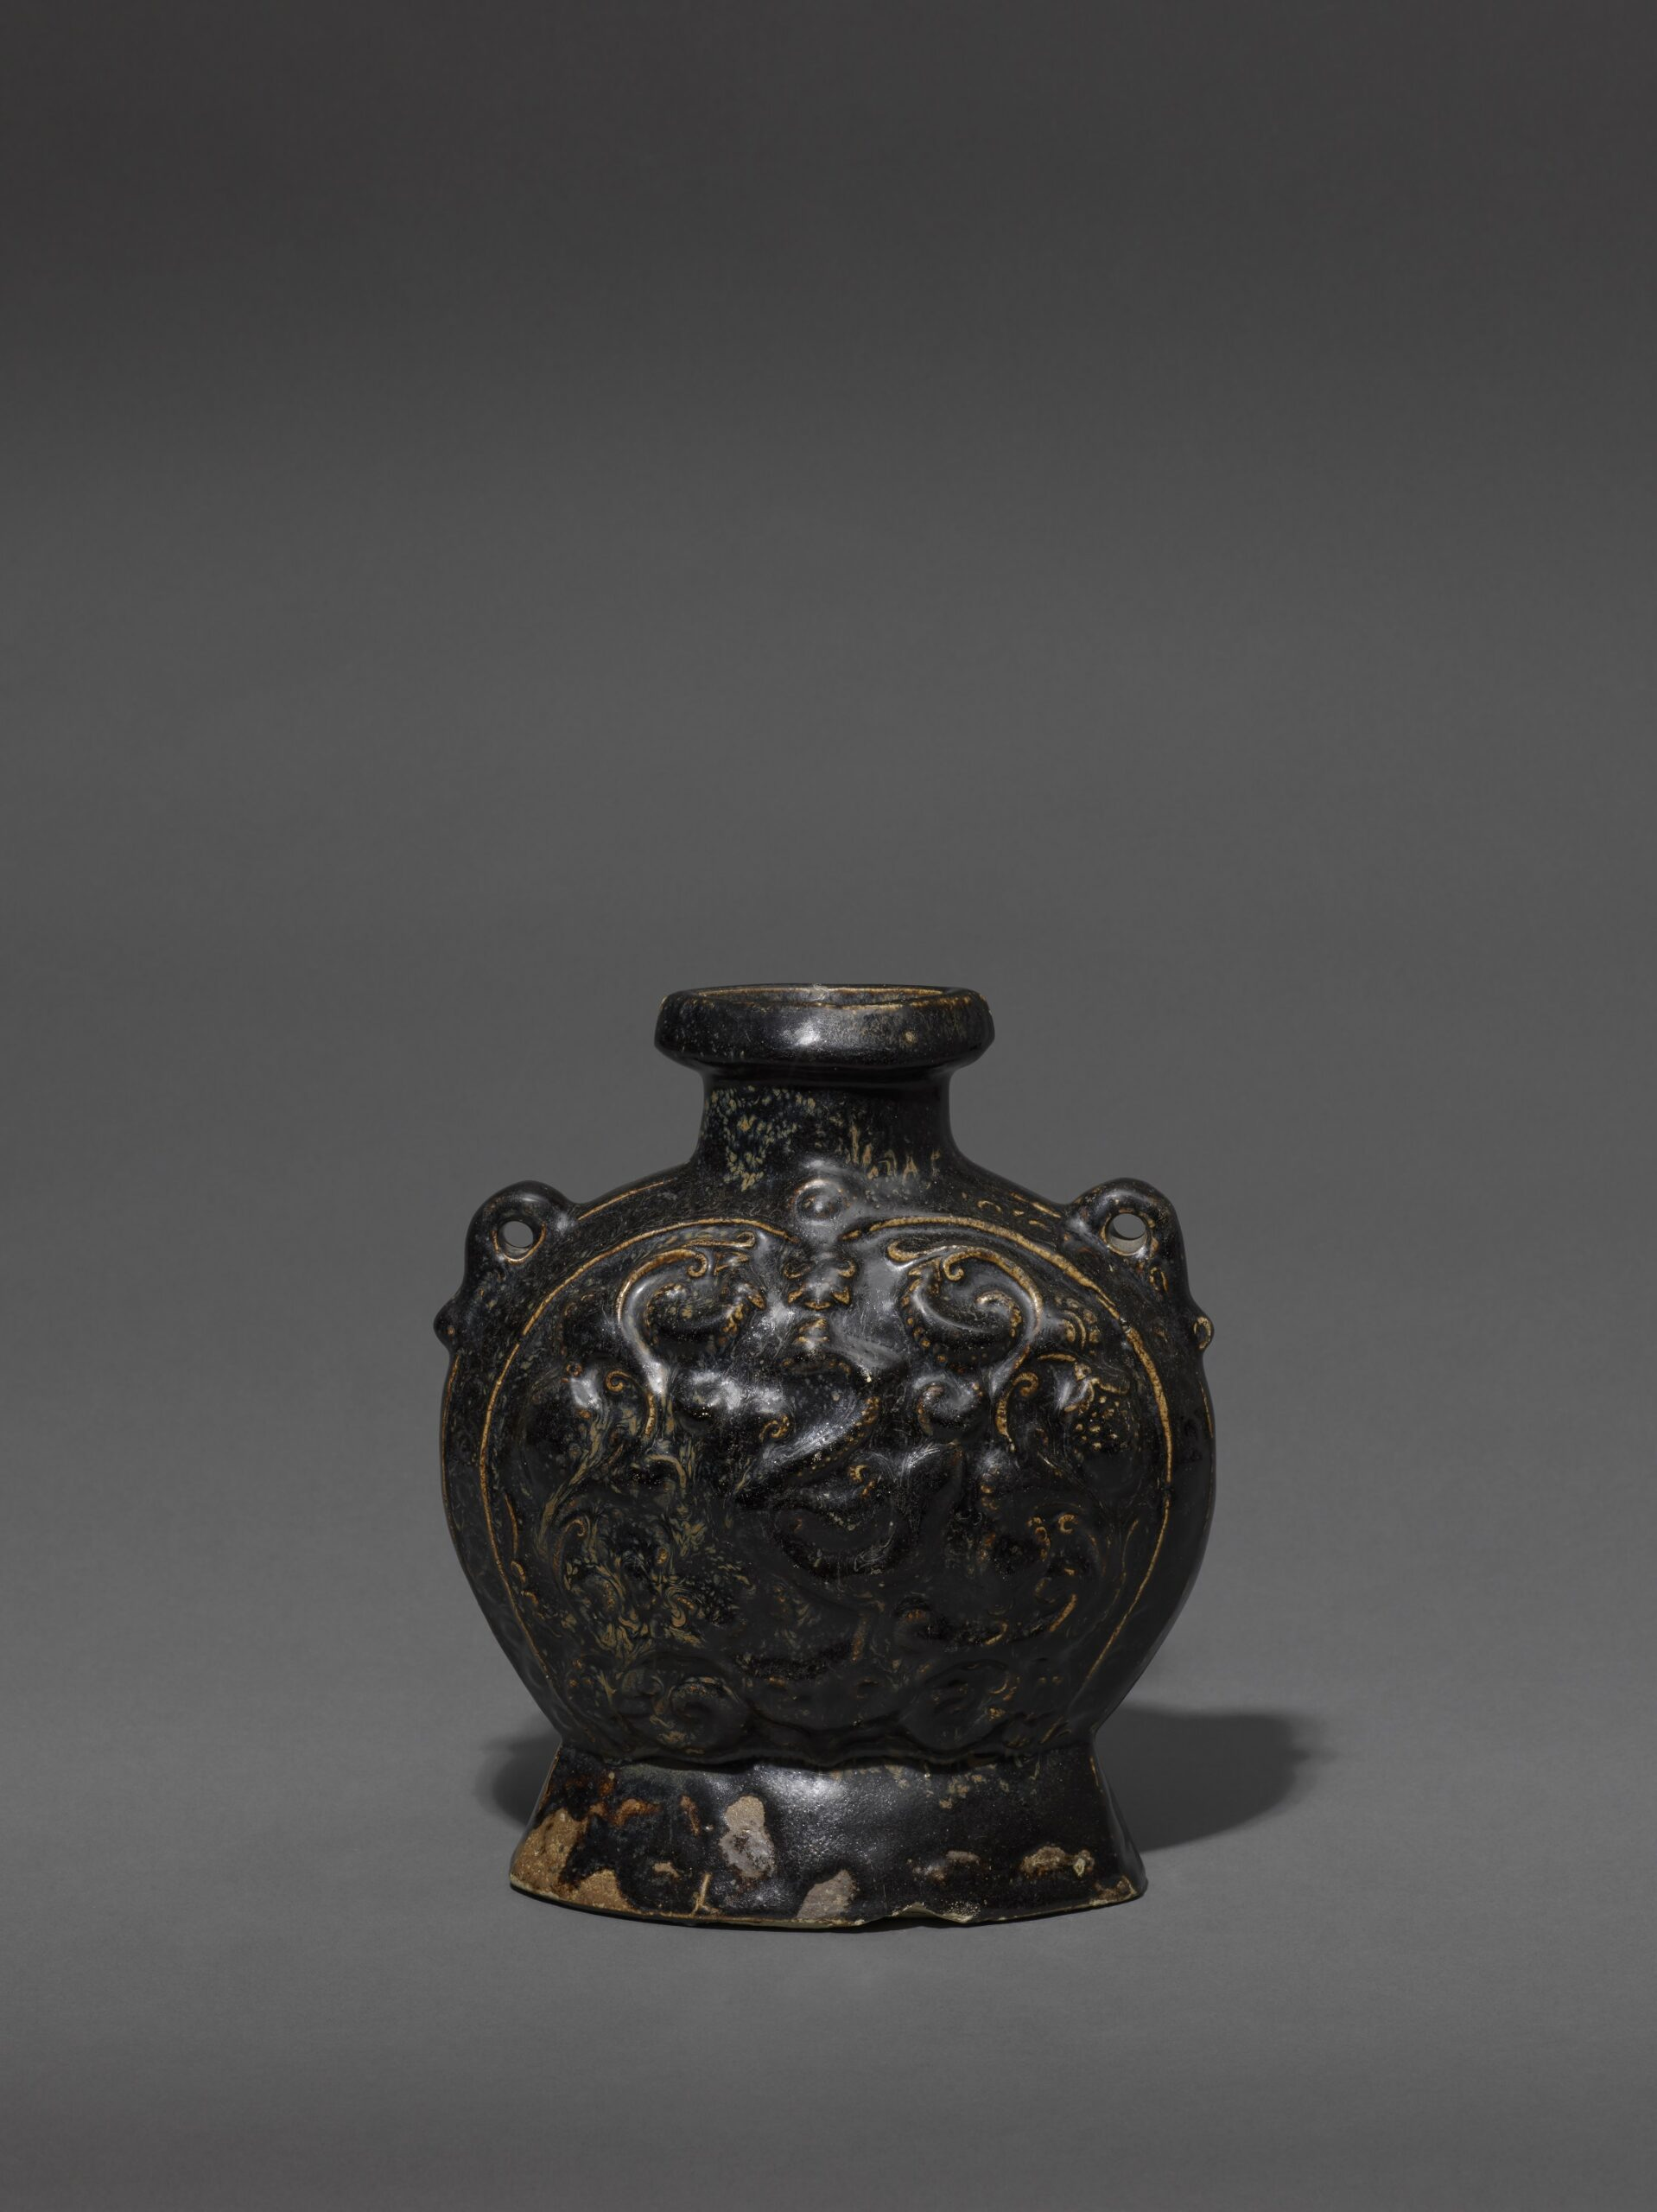 A BLACK-GLAZED STONEWARE PHOENIX-PATTERN PILGRIM FLASK Sui dynasty (581-618) or early Tang dynasty (618-906) Height: 23.2 cm, 9 ⅛ inches 隋或唐 黑釉瓷葡萄鳳紋扁壺 高23.2釐米